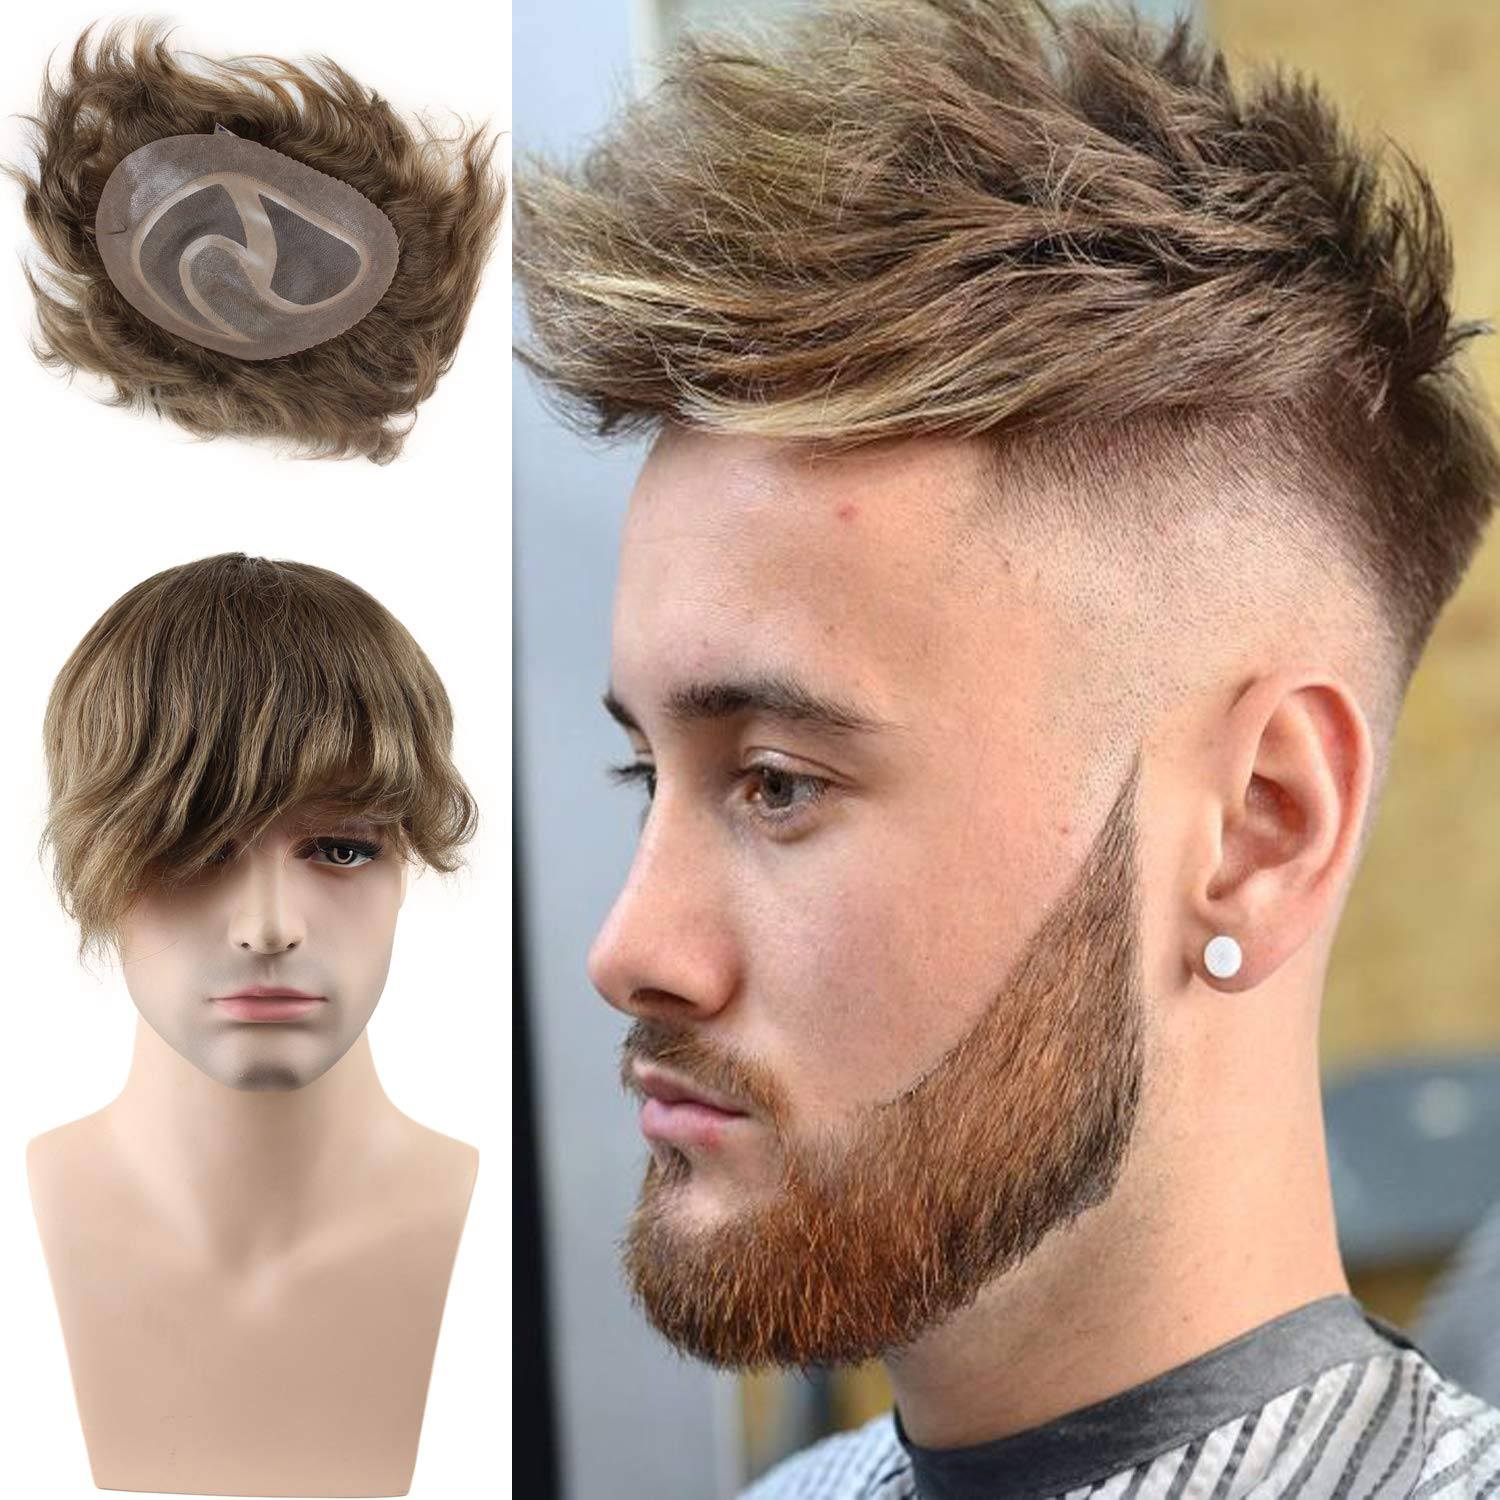 Toupee For Men Hair Pieces 100% European Virgin Human Hair Replacement System For Men 10